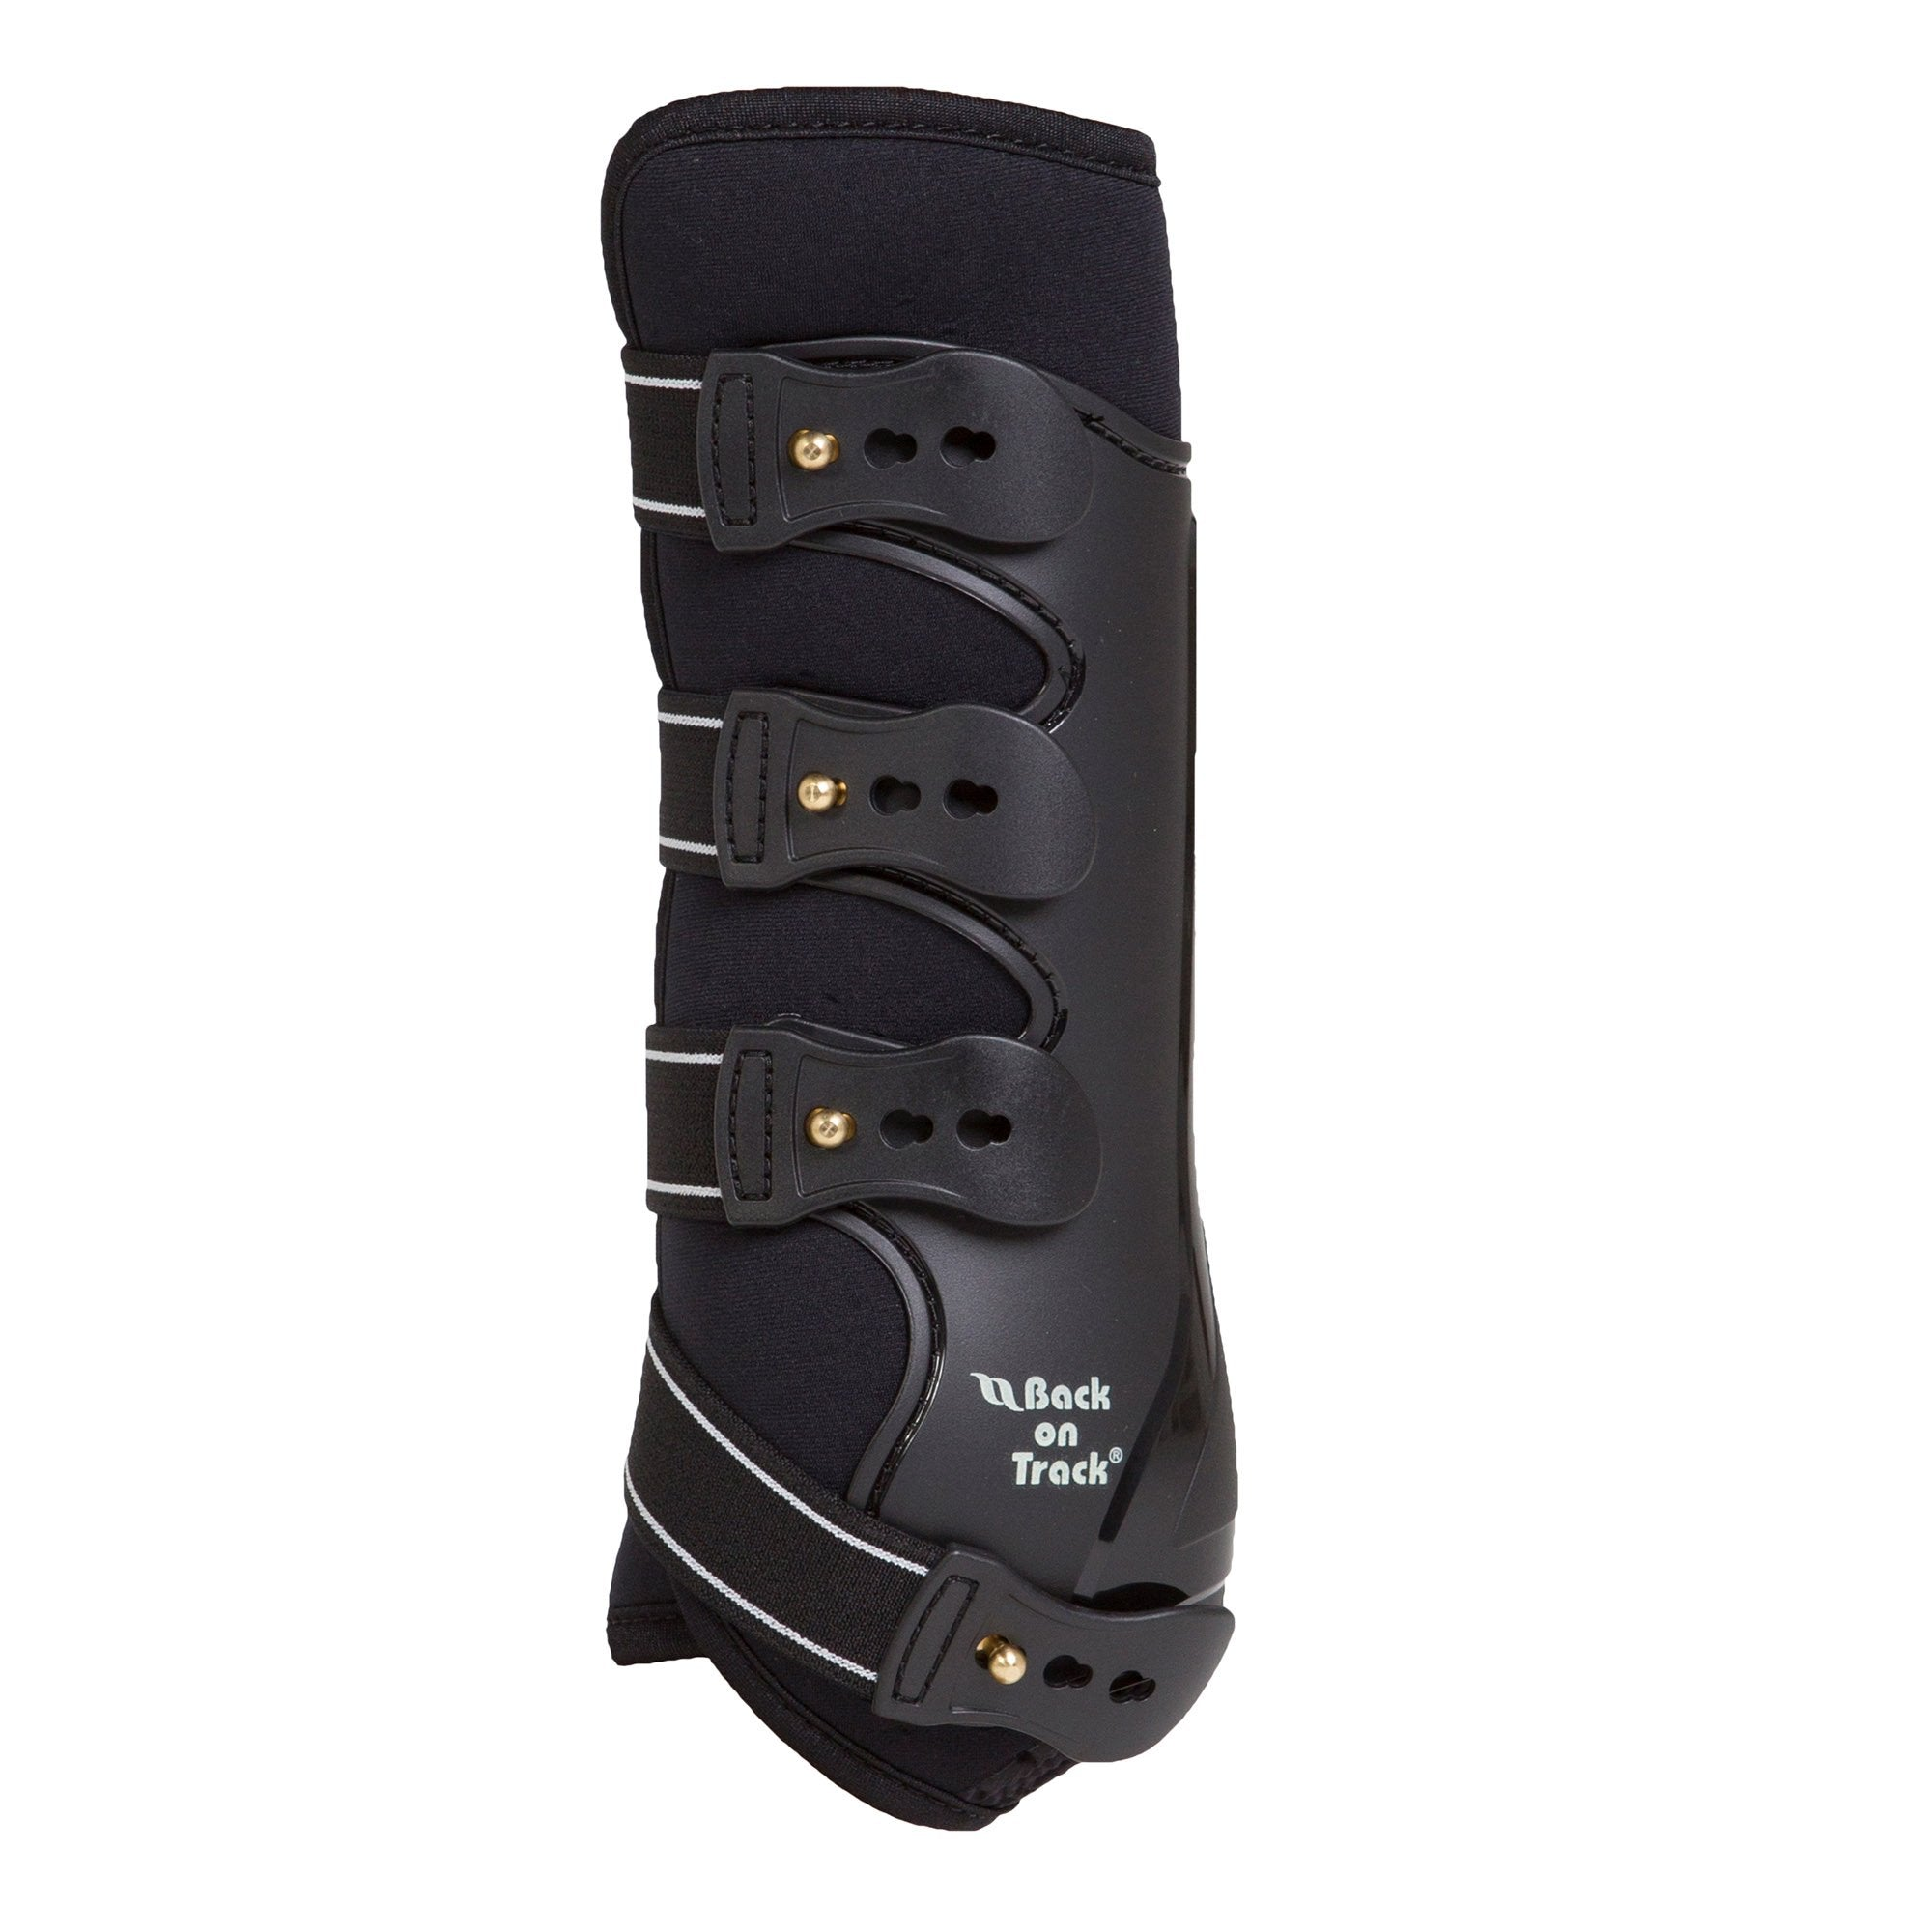 Royal Work Boots Hindlegs - Back on Track Sverige (5300118290587)